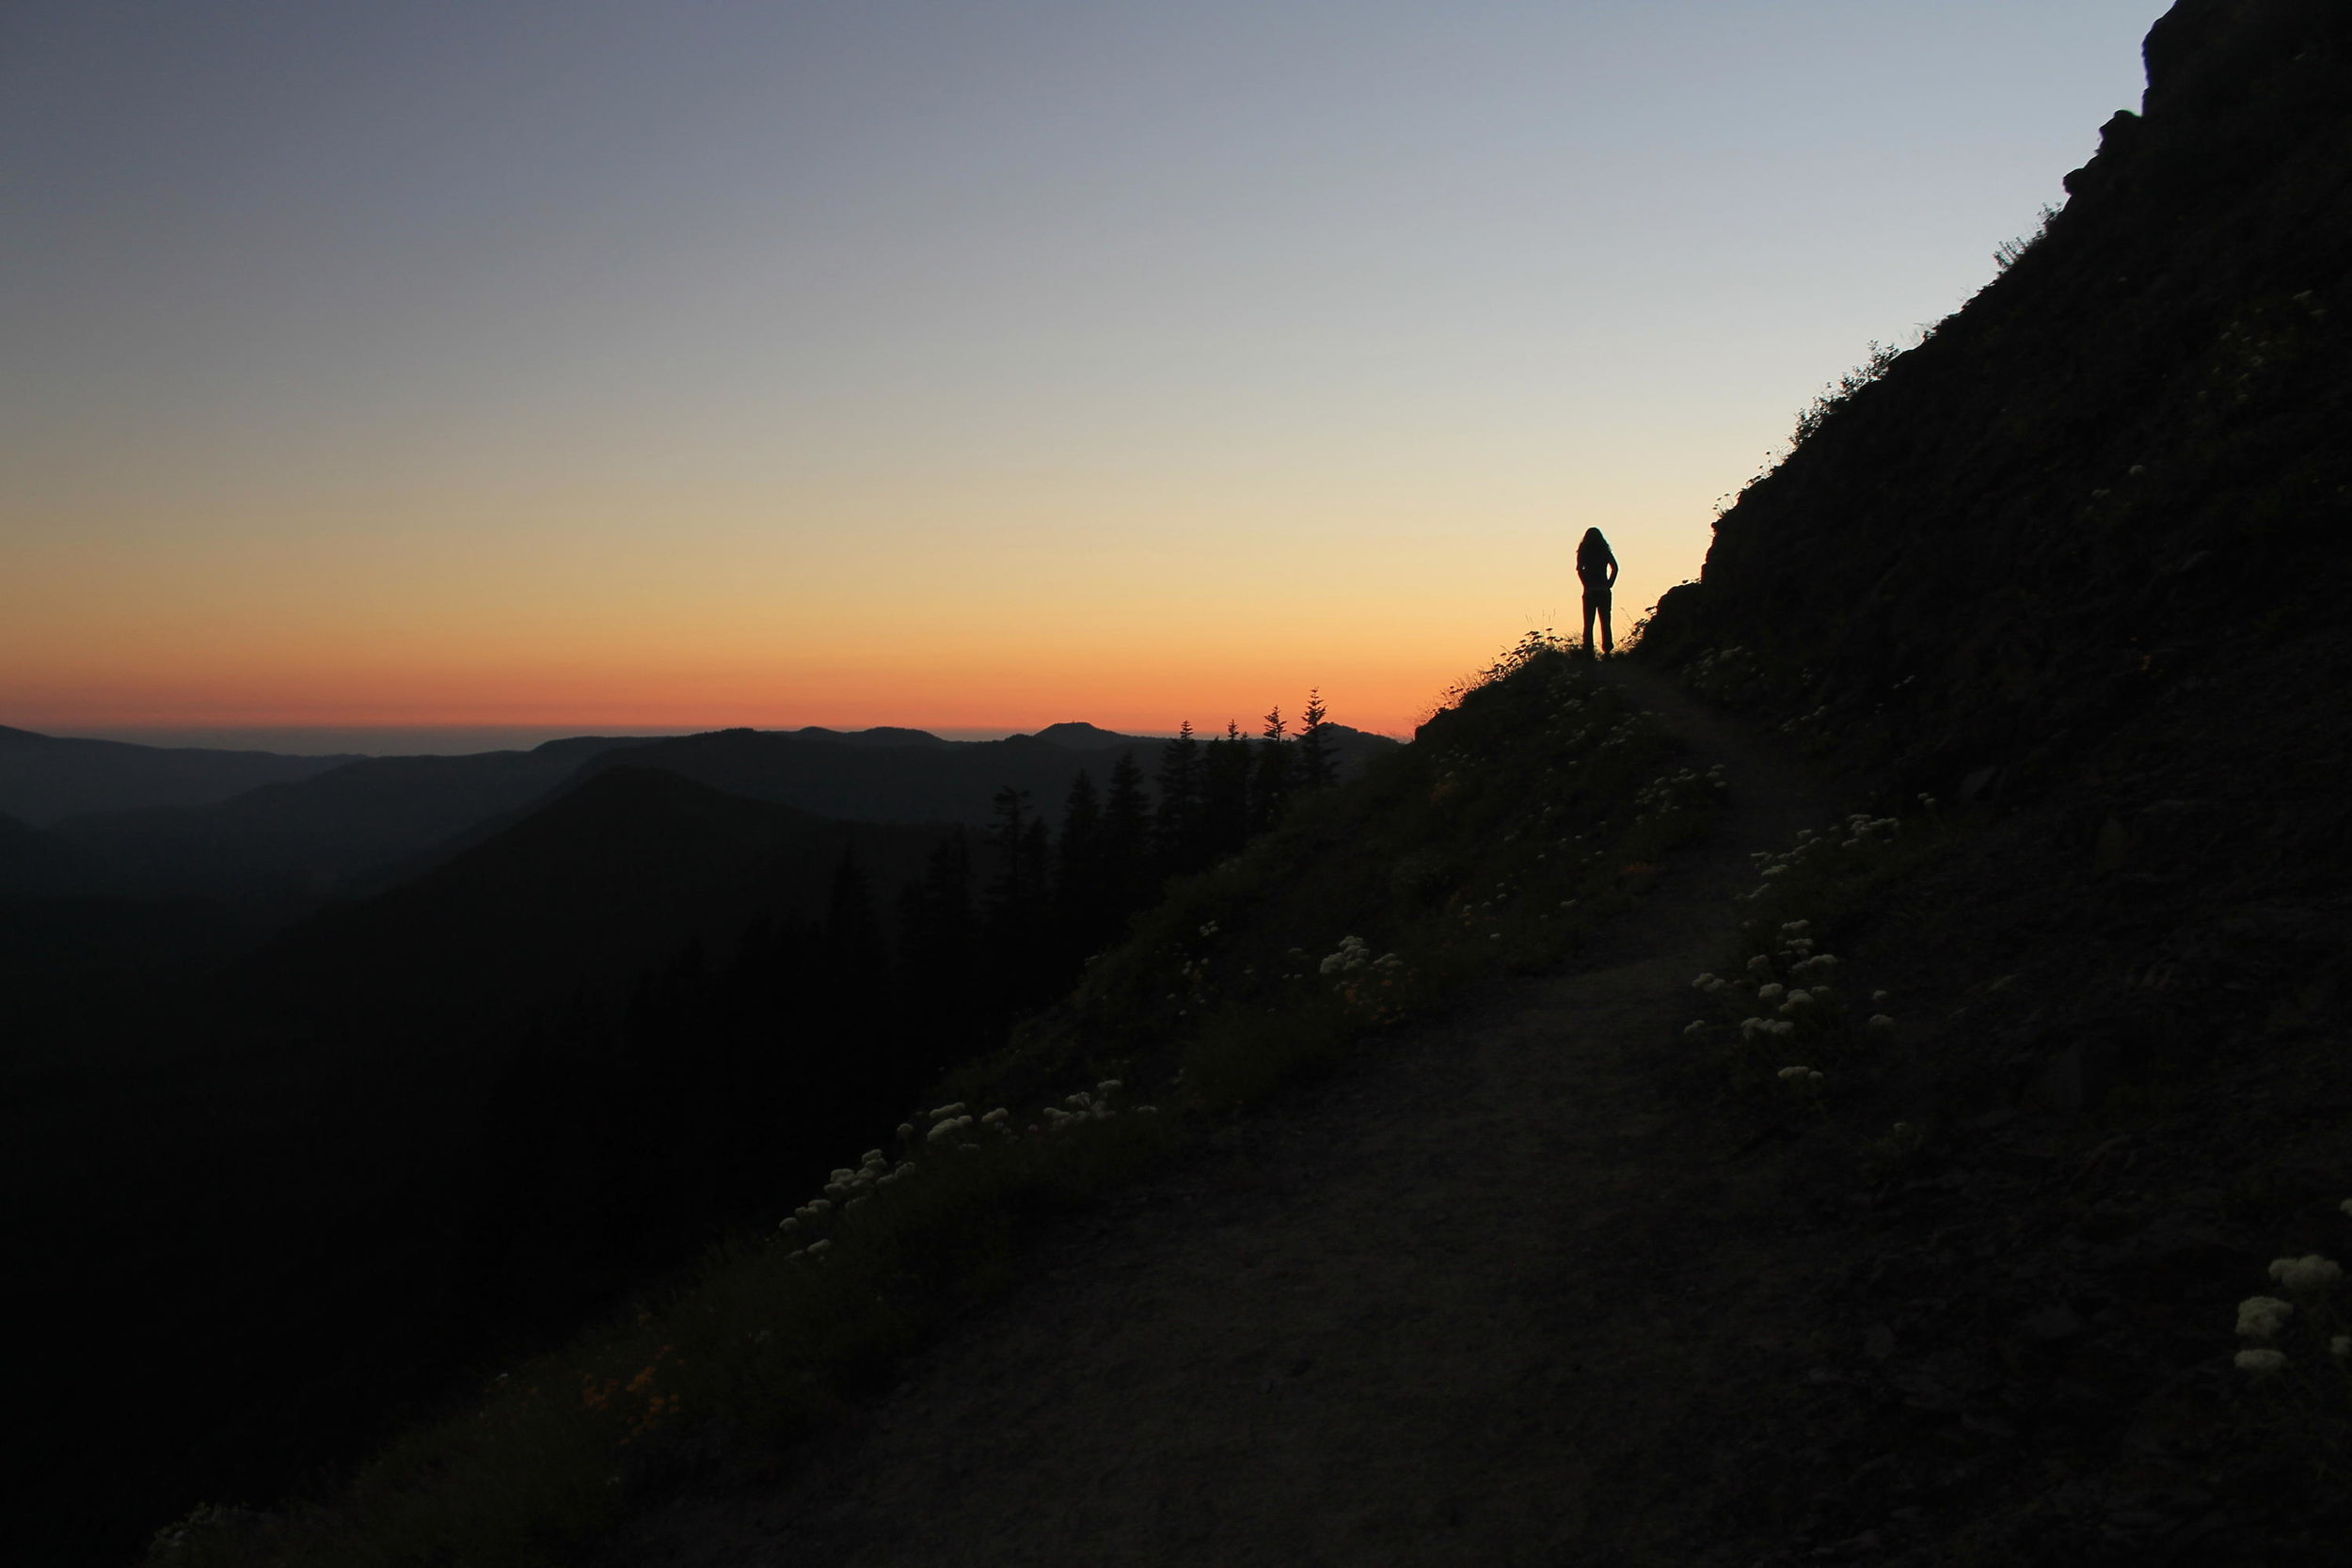 Sunset over the Valley at Bald Mountain.